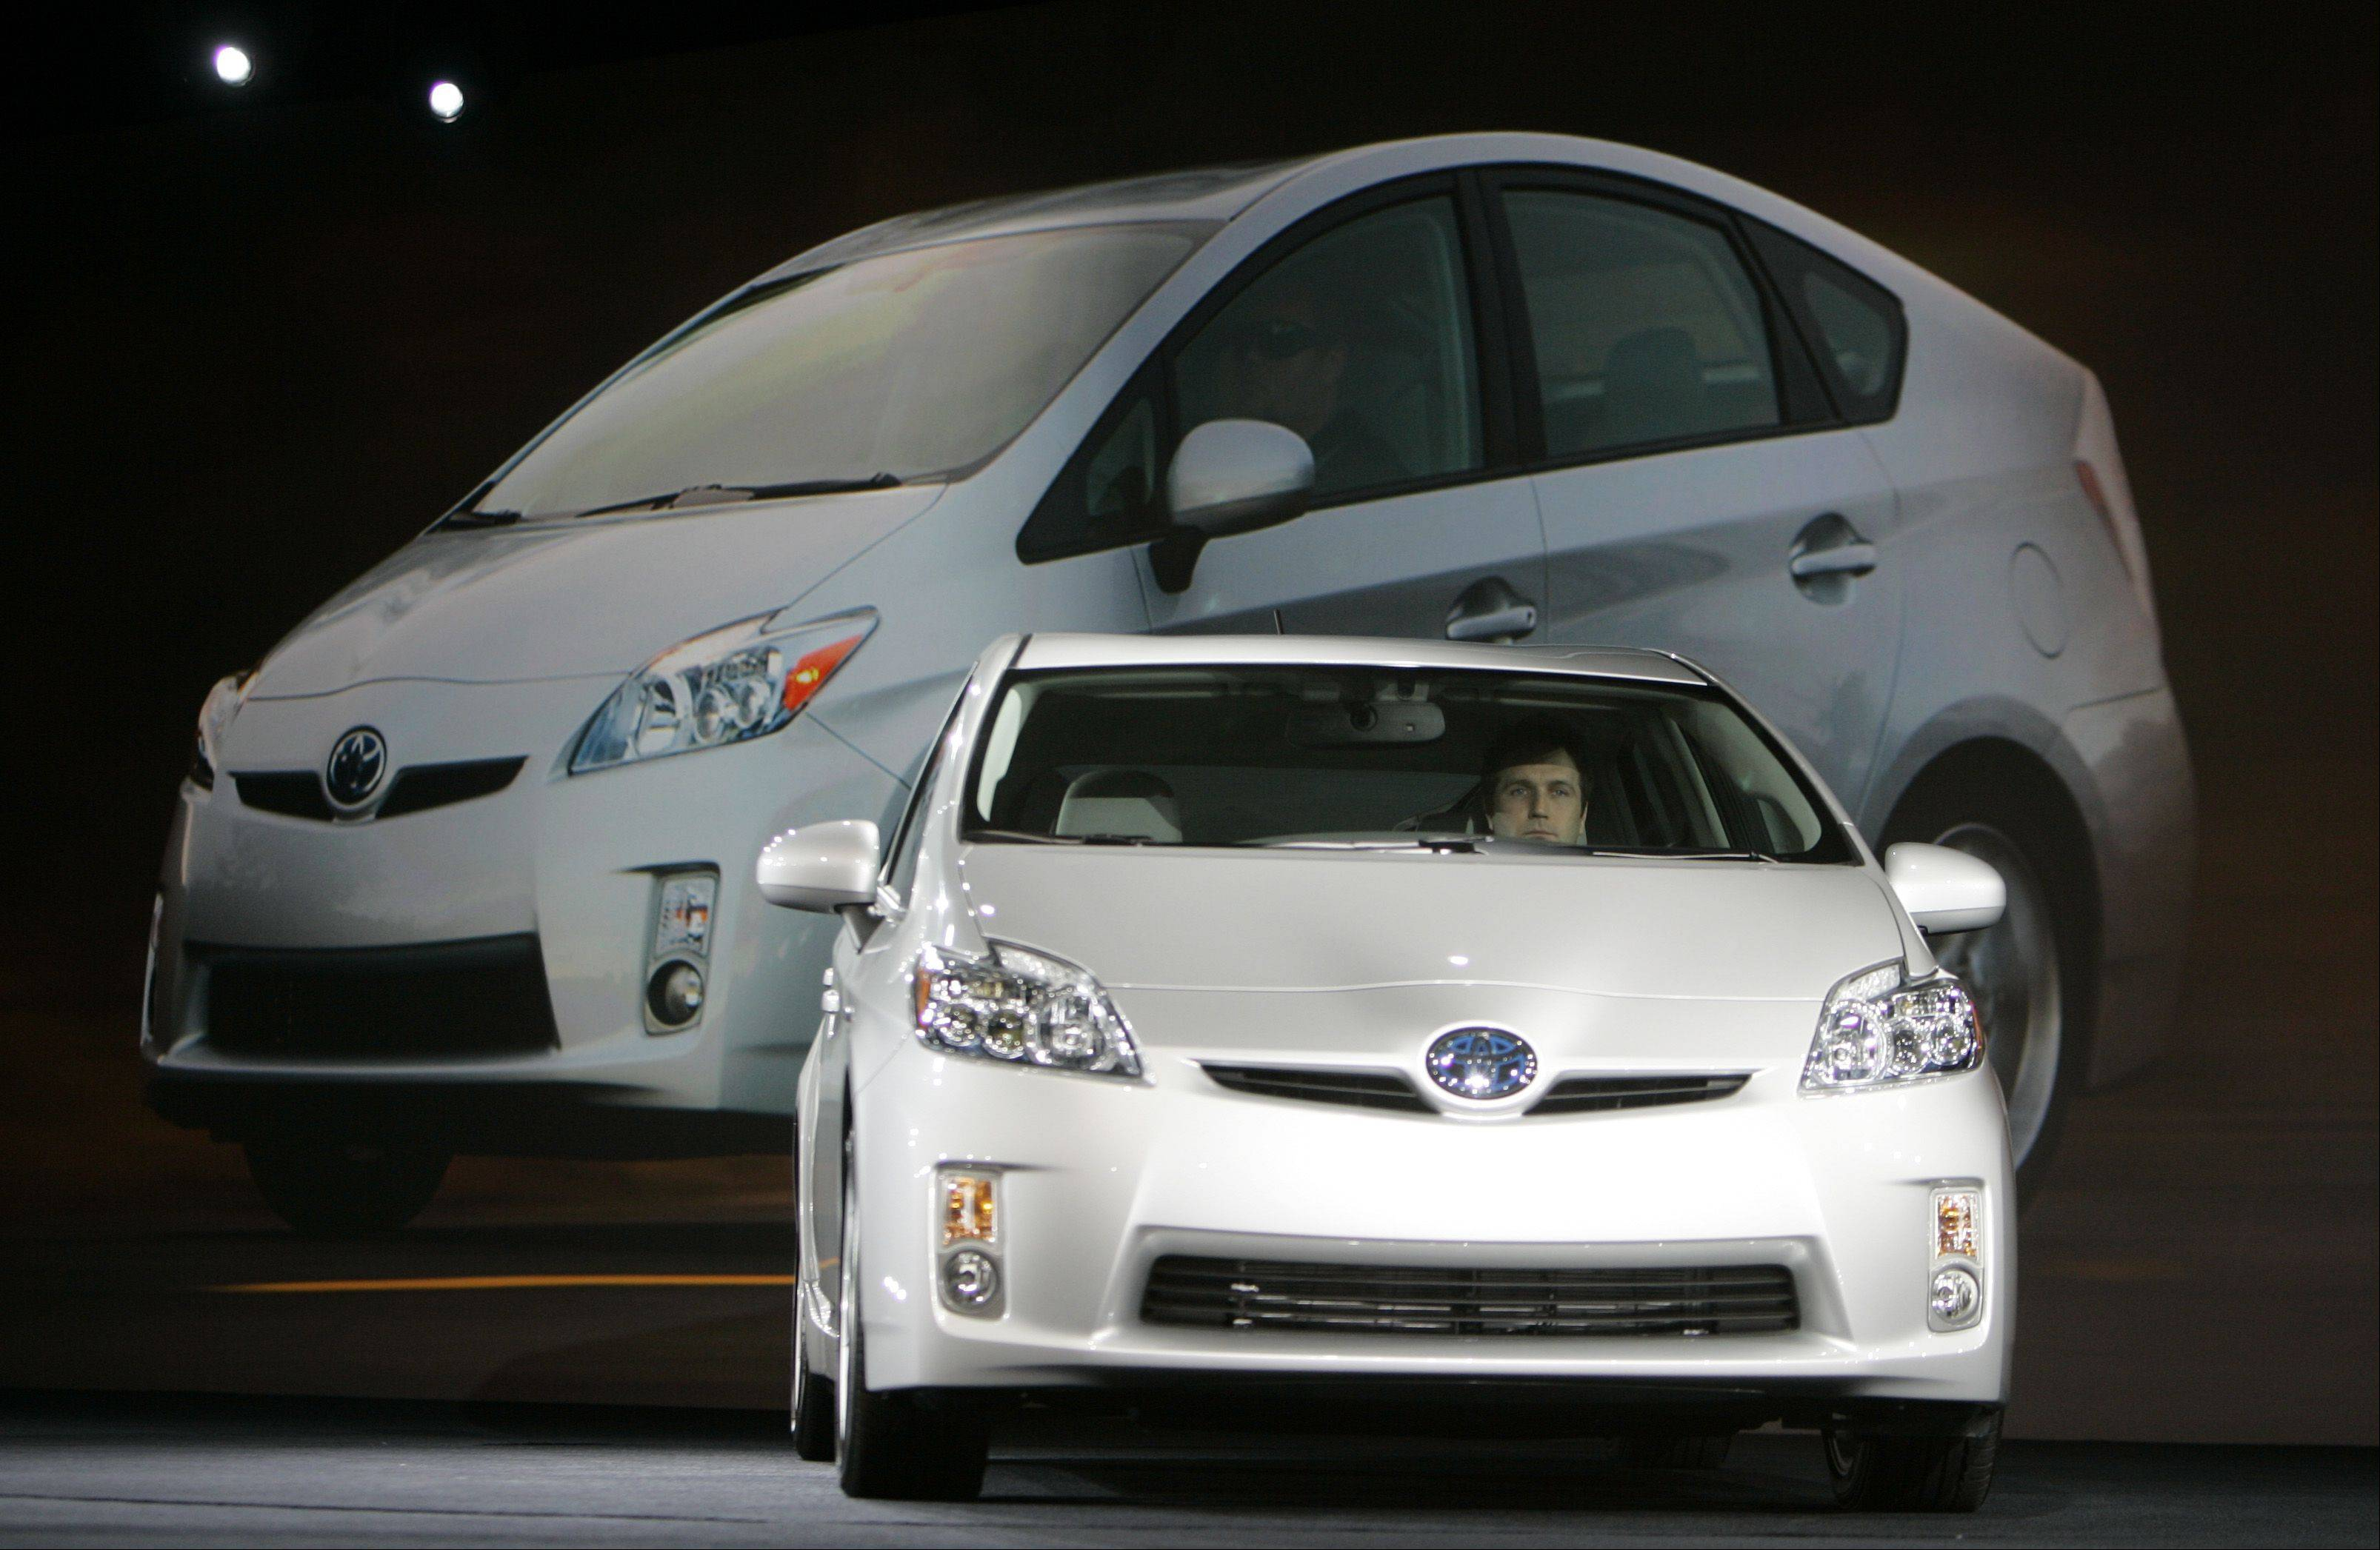 Prius and other hybrids are now staples in the Toyota line, and they could account for more than half of the company's U.S. sales in the next five years.